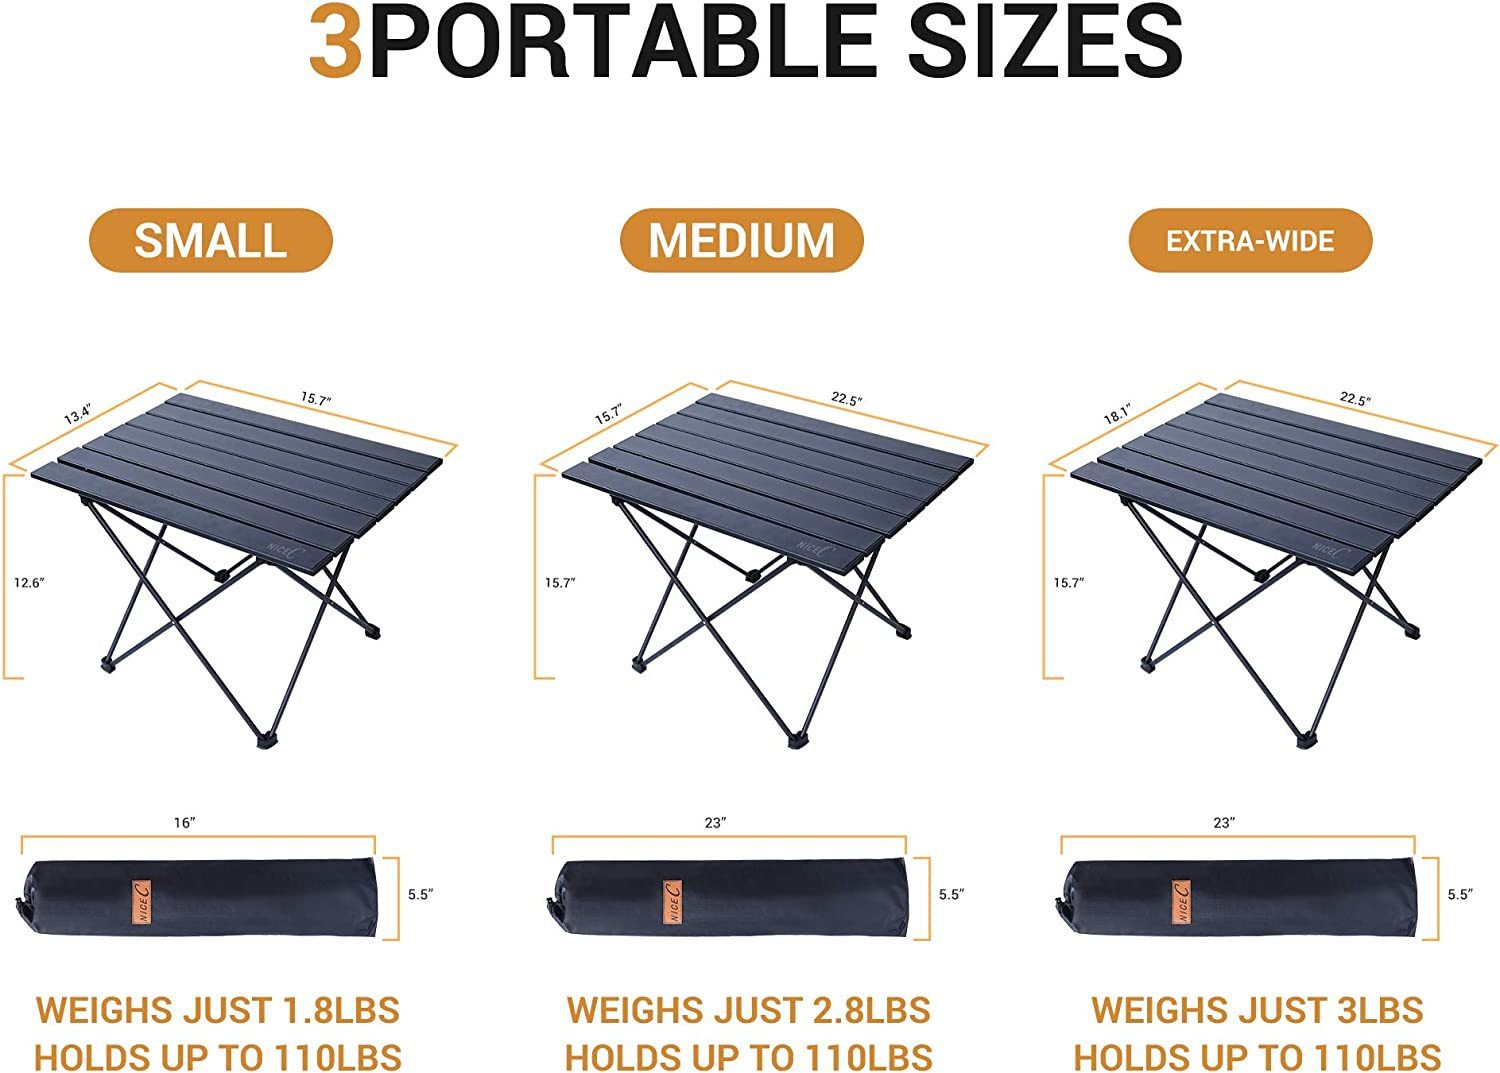 Office Nice C Folding Table Festival Aluminum Collapsible Table top Portable Camping Table Cooking BBQ Indoor Ultralight Compact with Carry Bag for Outdoor Beach Picnic